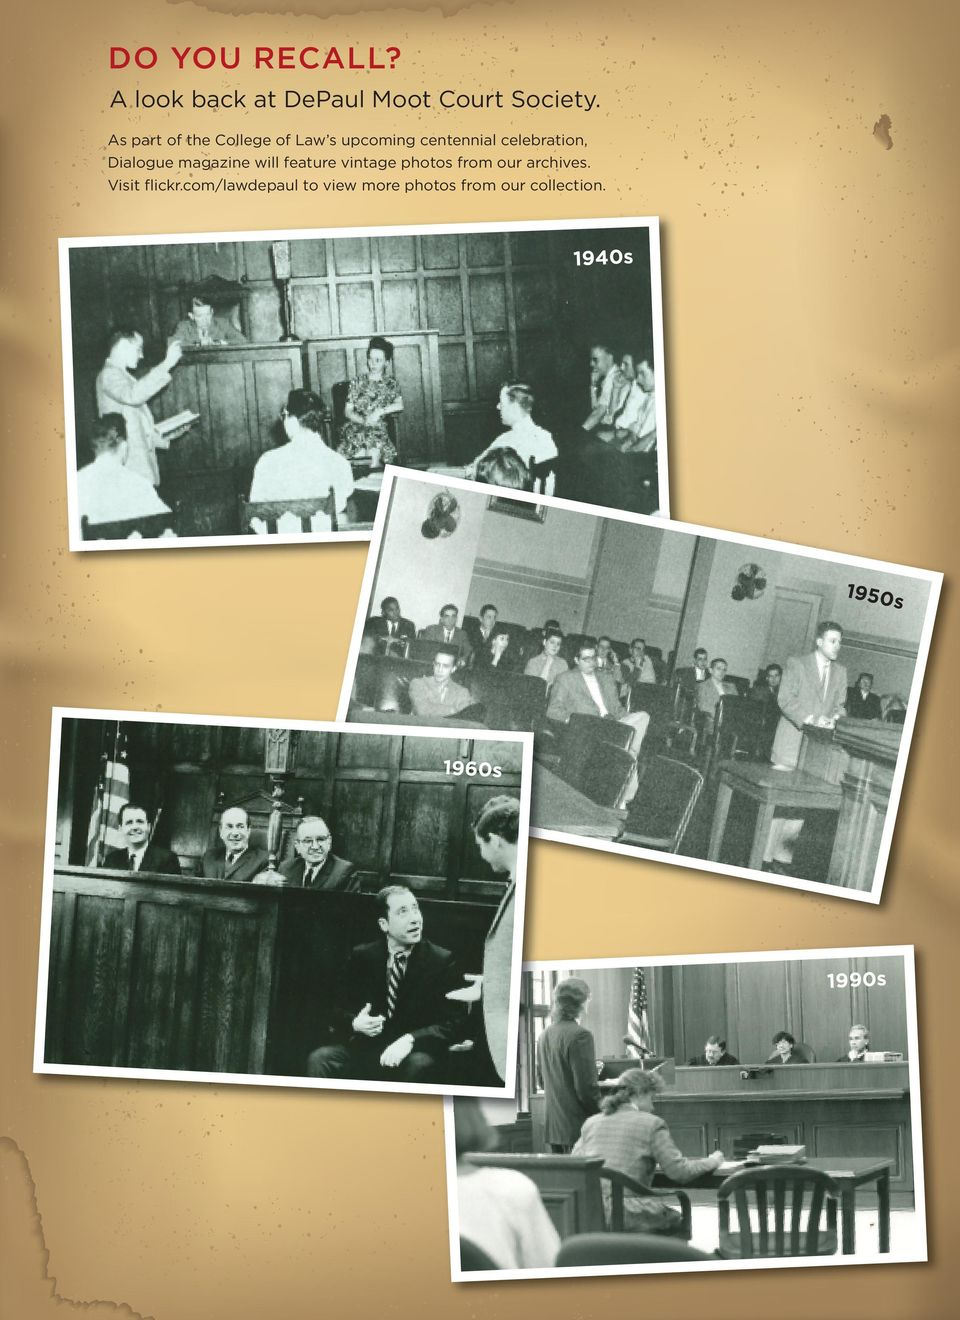 magazine will feature vintage photos from our archives. Visit flickr.